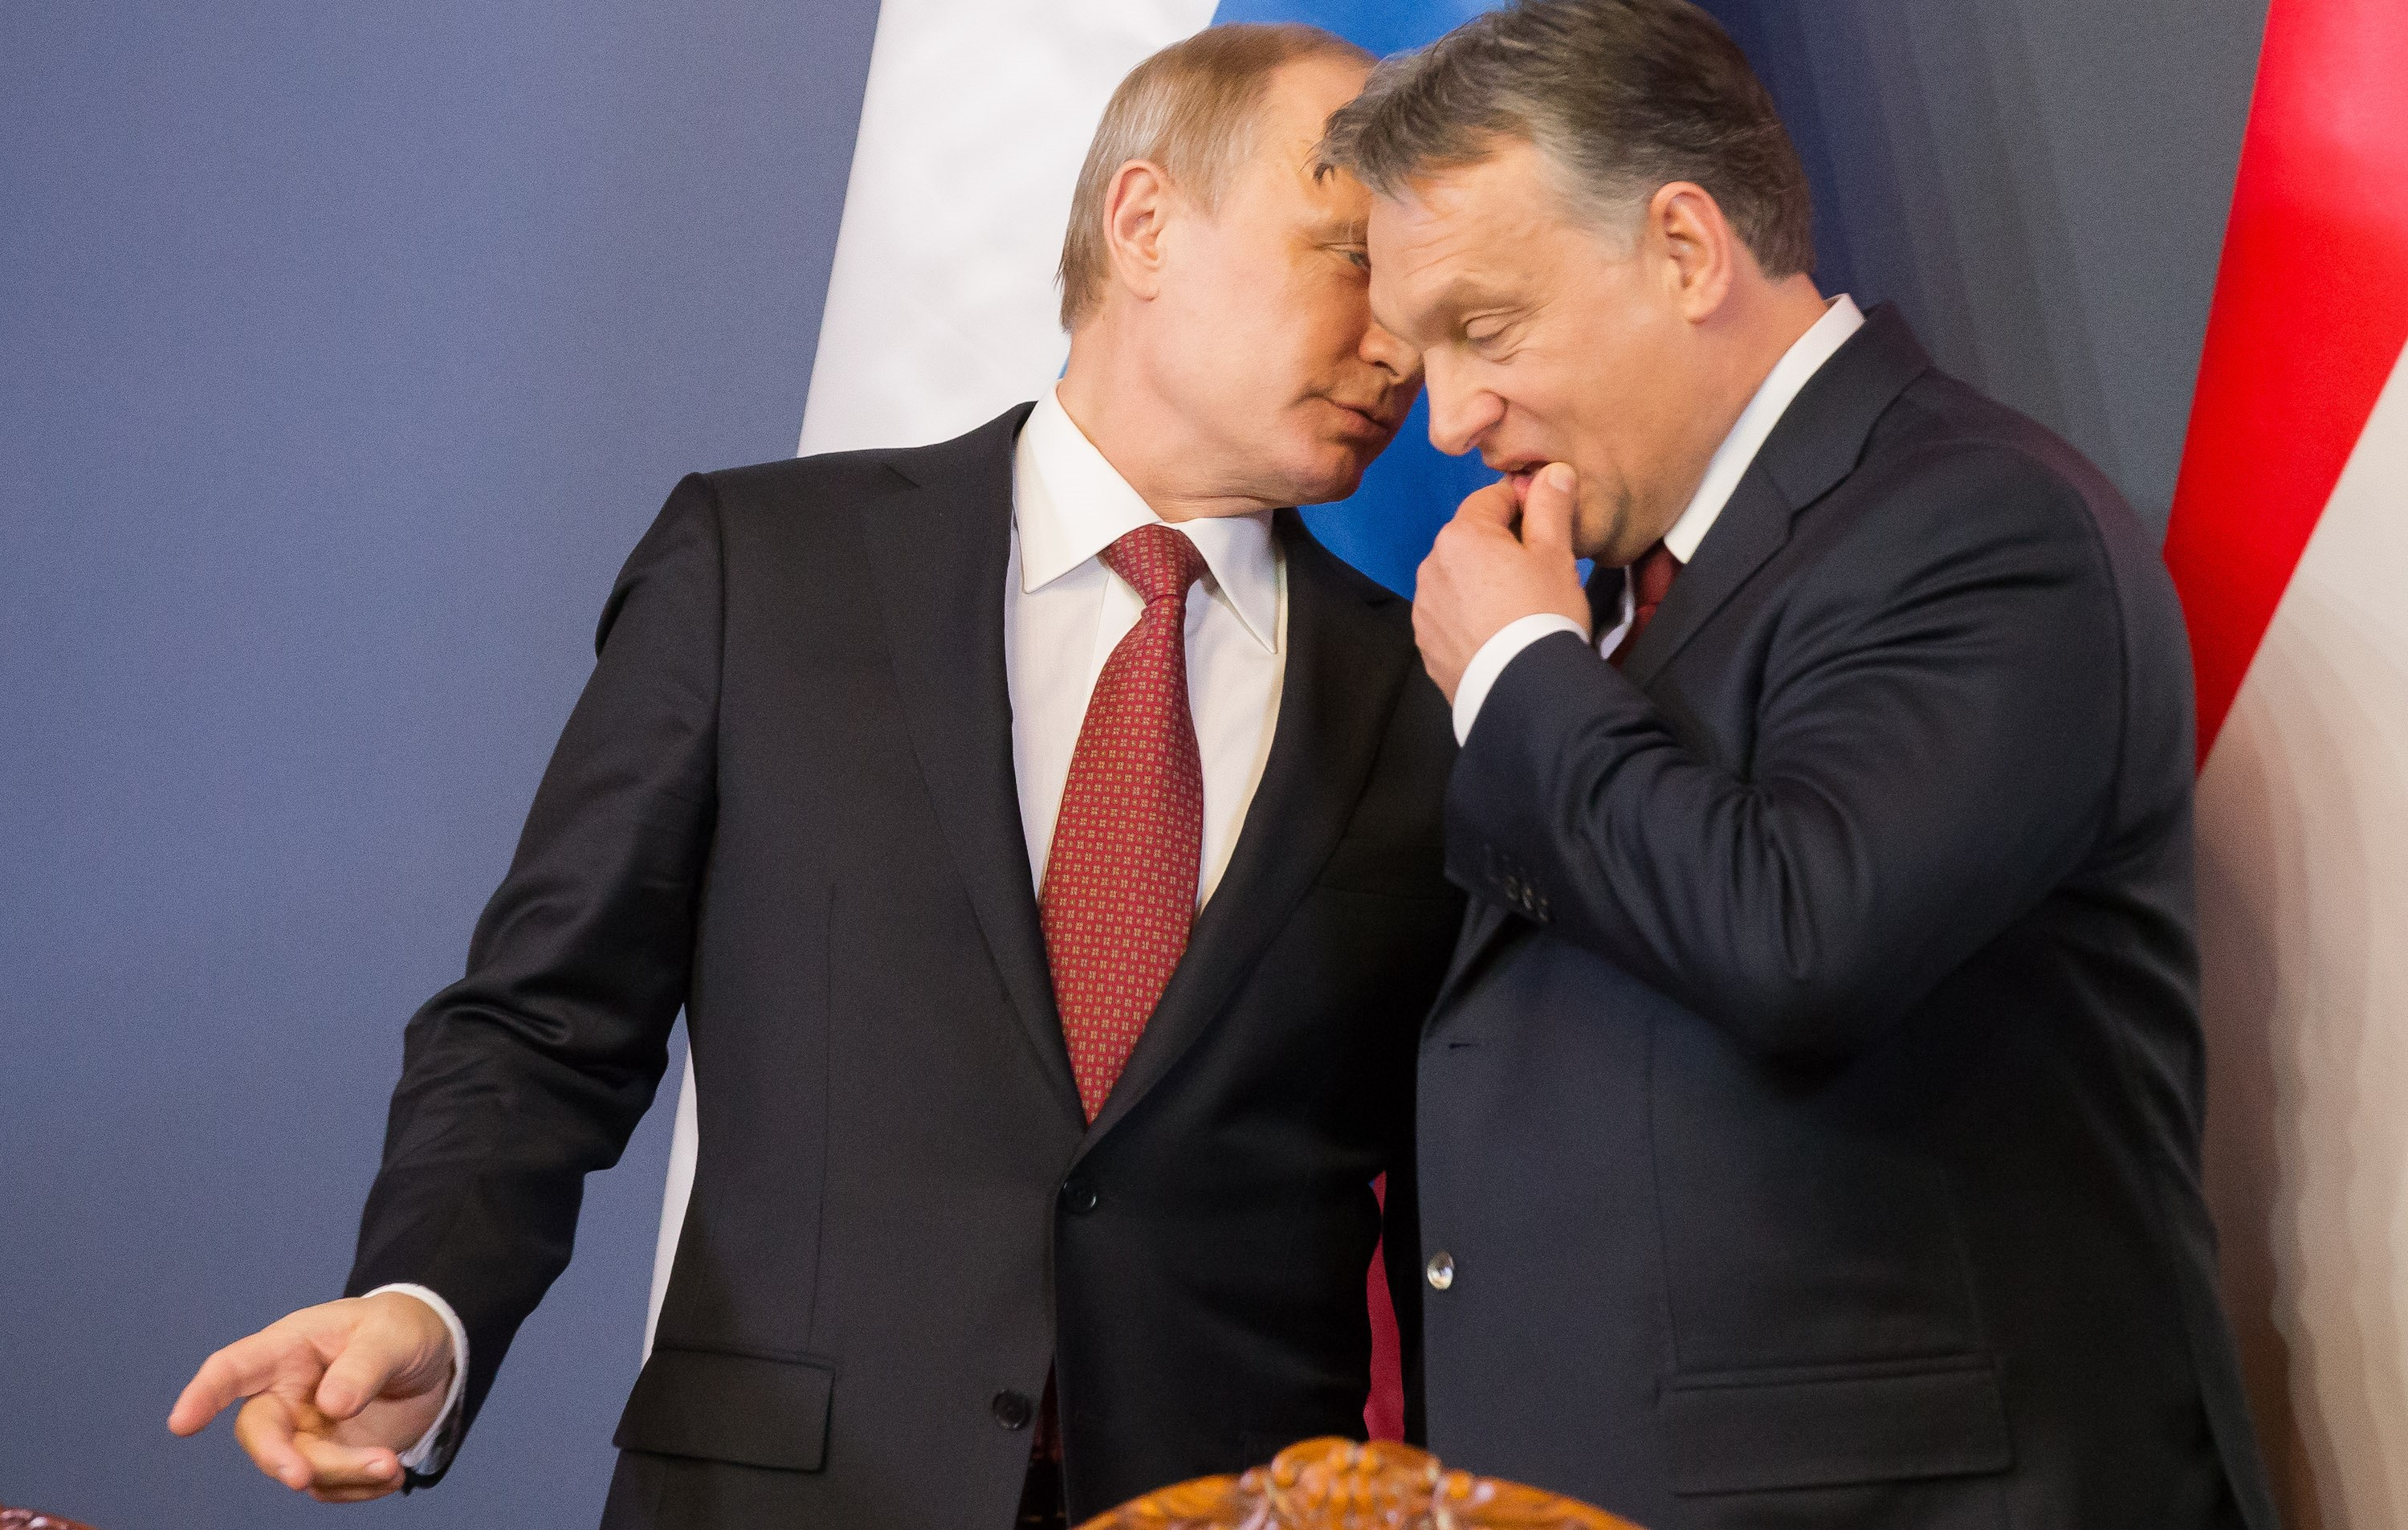 A suitcase full of cash from the Solntsevo Mafia: does Putin have a video kompromat on the Hungarian leader?